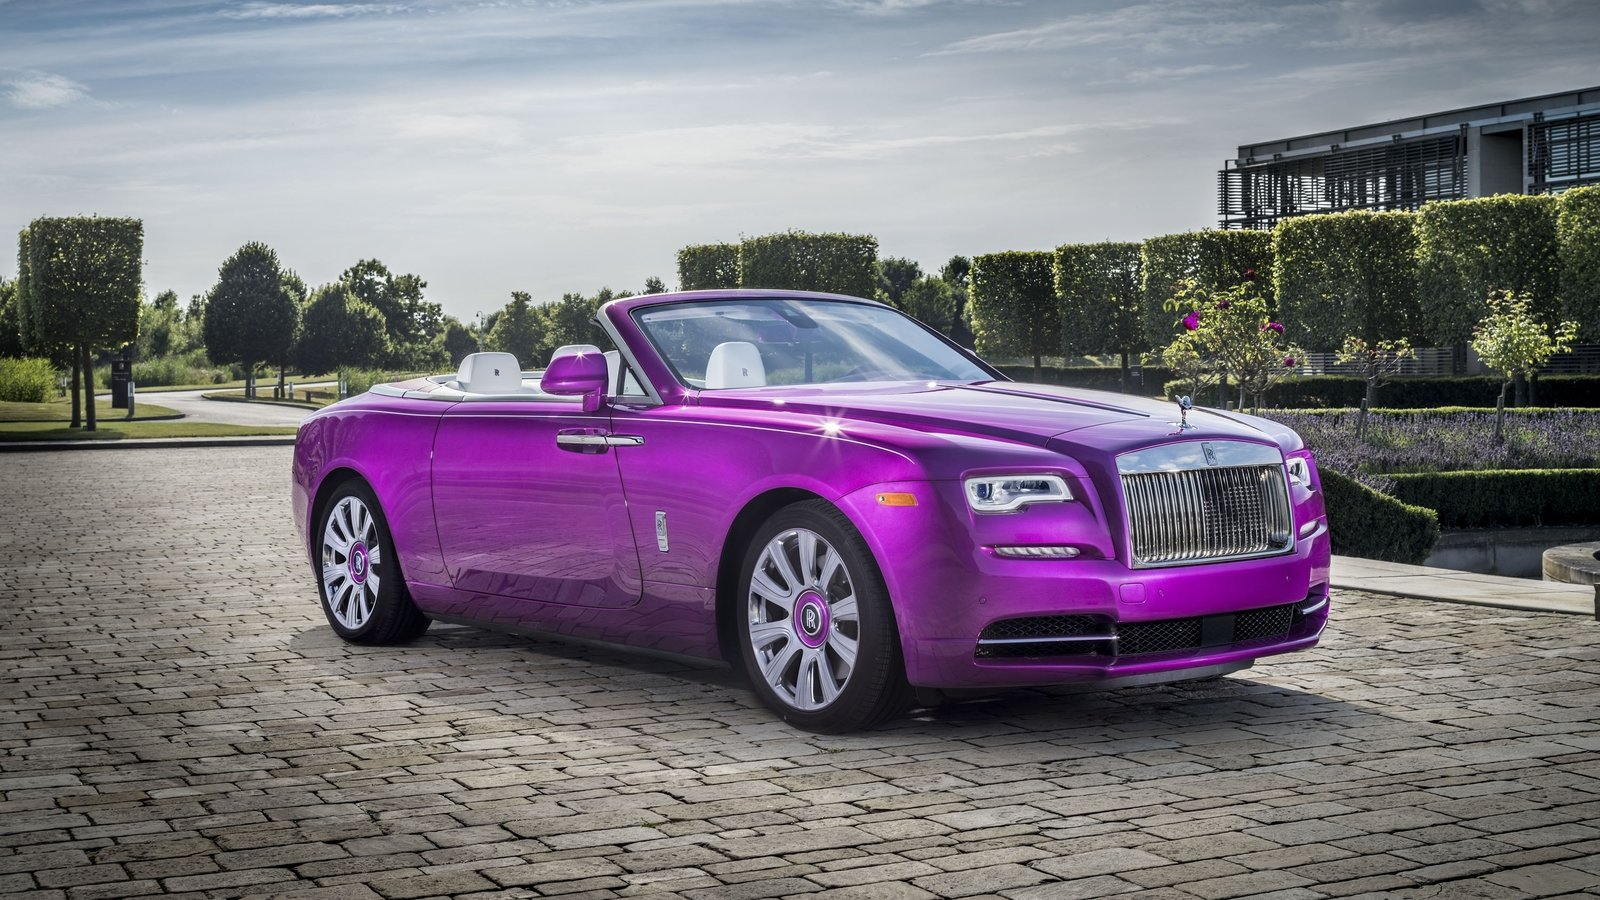 Rose Gold Rolls Royce >> 2017 Rolls Royce Dawn In Fuxia Review - Top Speed